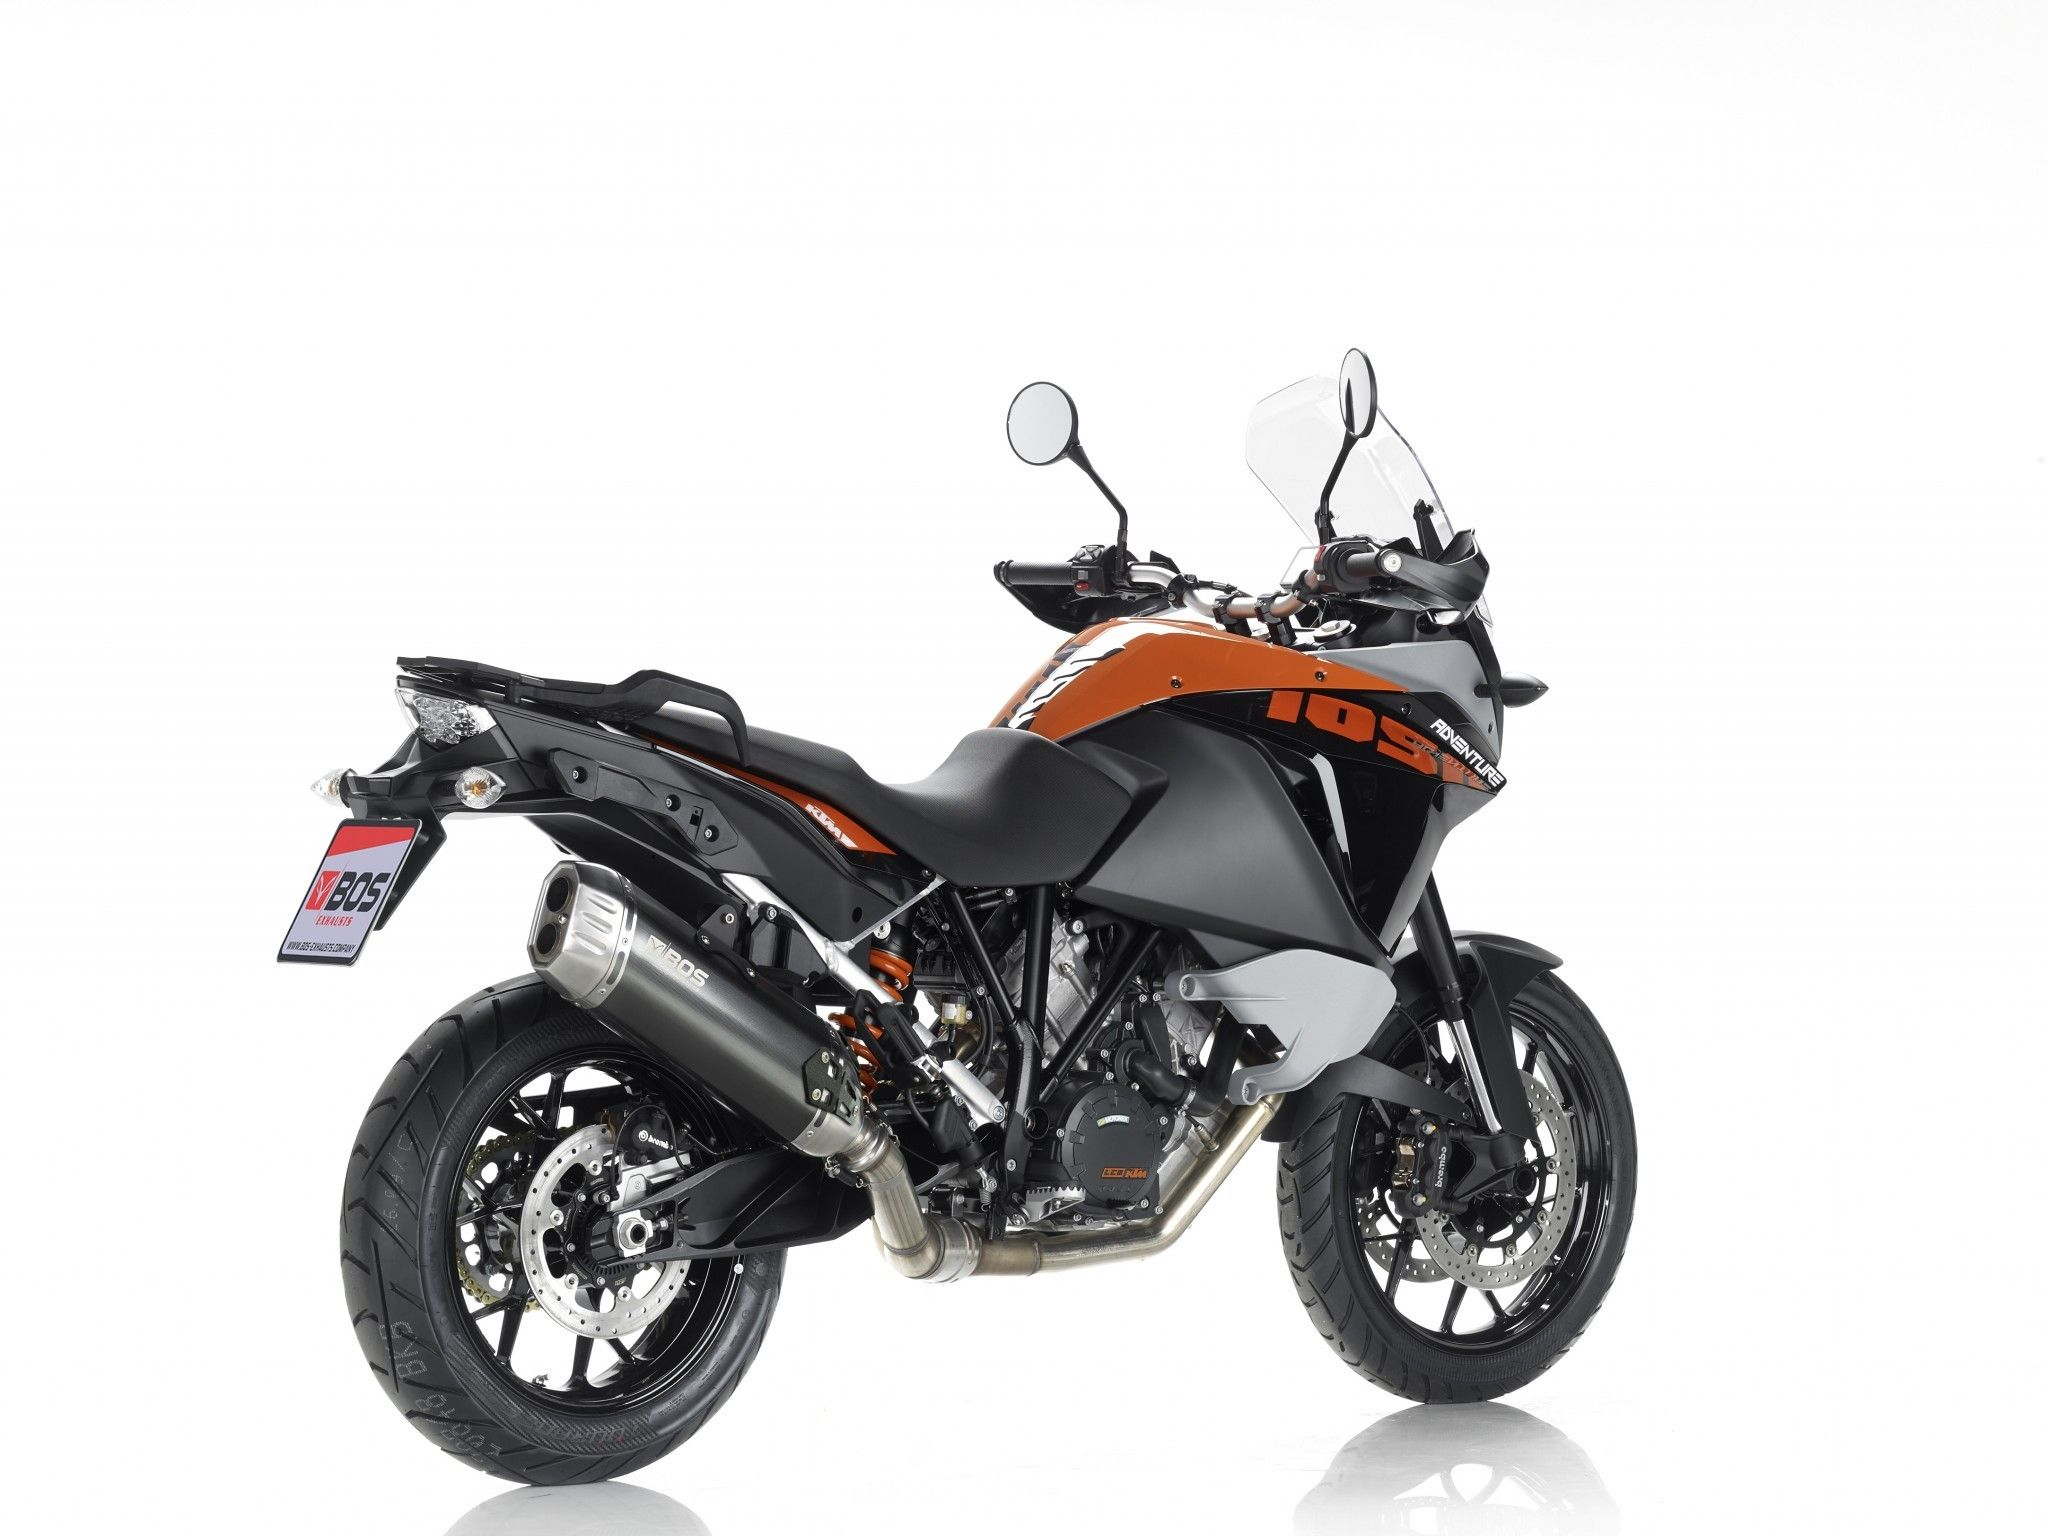 ktm 1050 adventure photos images and wallpapers. Black Bedroom Furniture Sets. Home Design Ideas